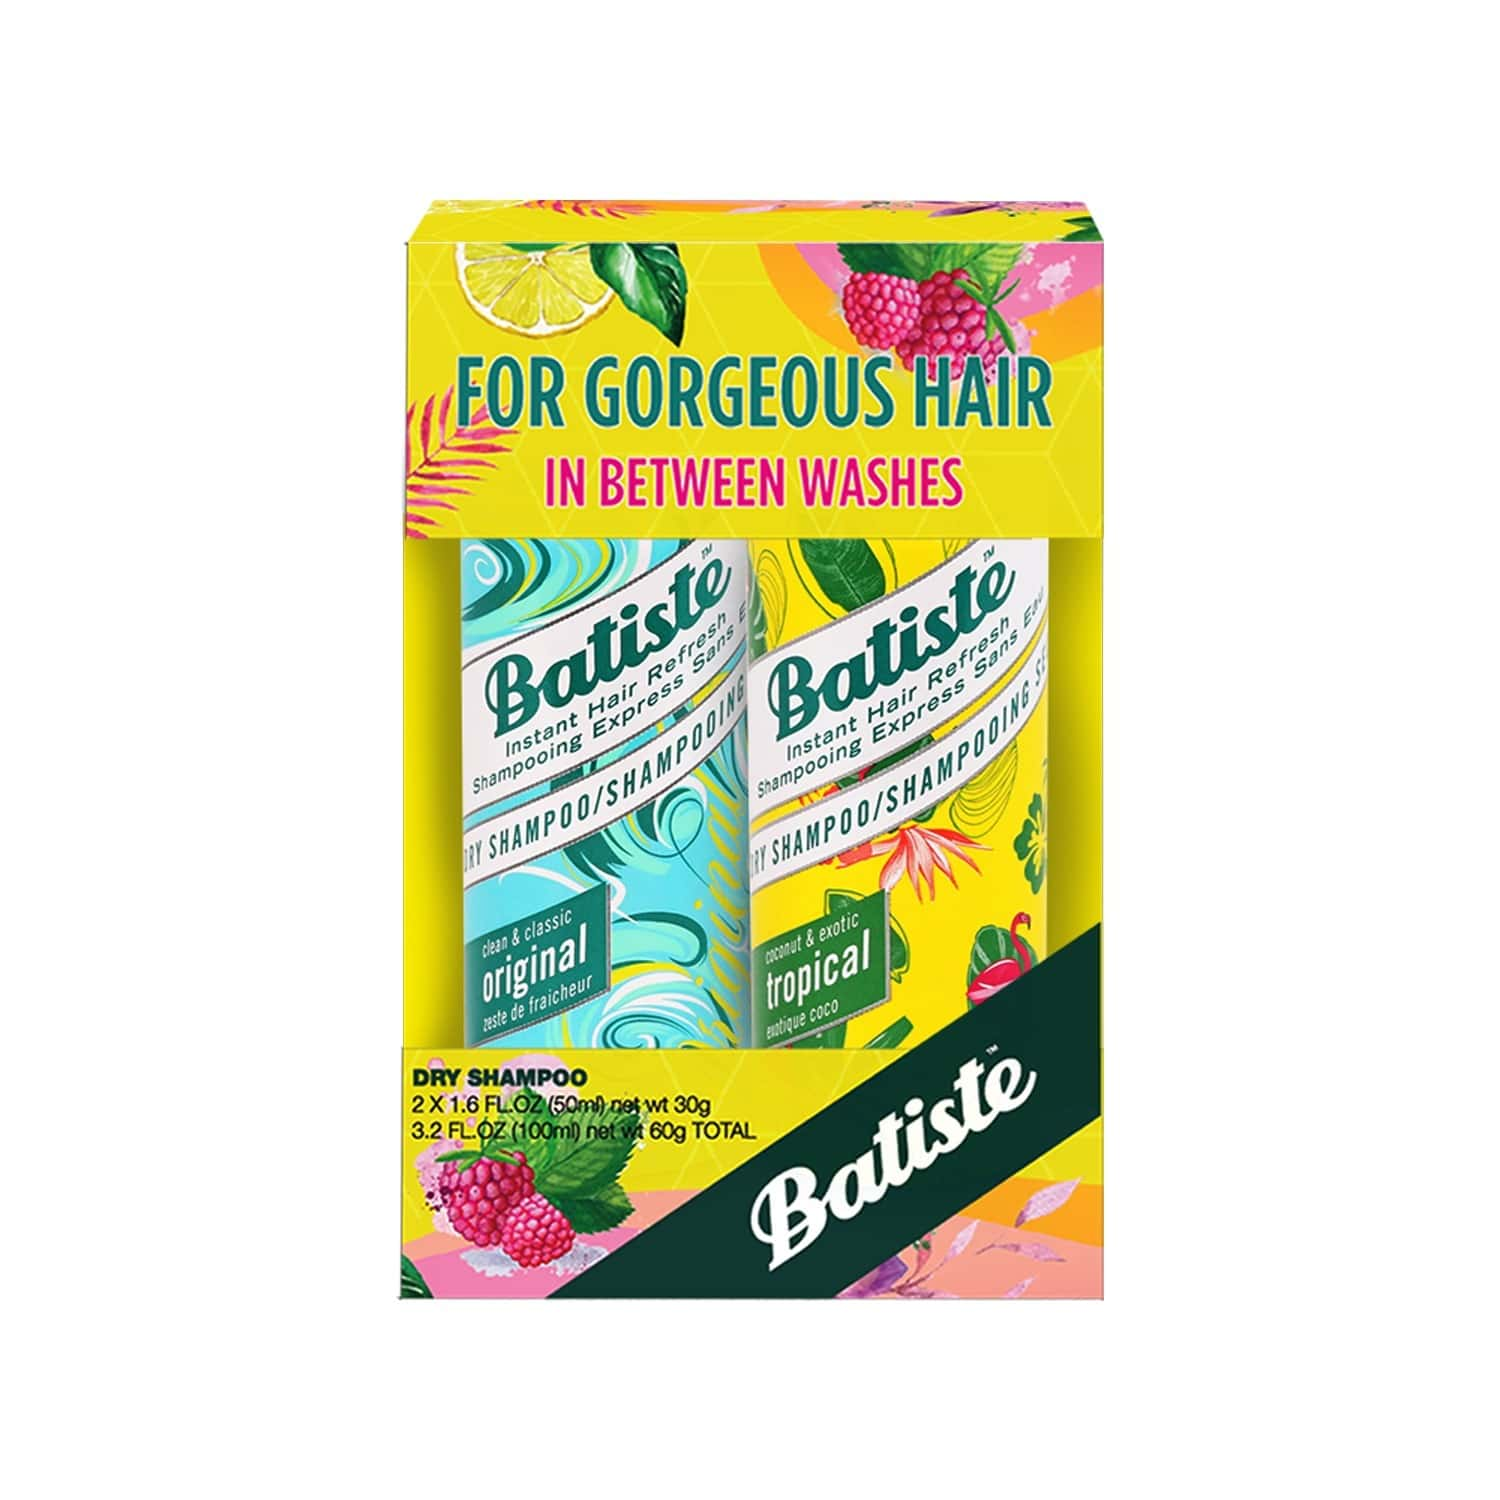 Batiste Clean & Classic Original, Coconut & Exotic Tropical Dry Shampoo - 100ml (pack Of 2 X 50ml)